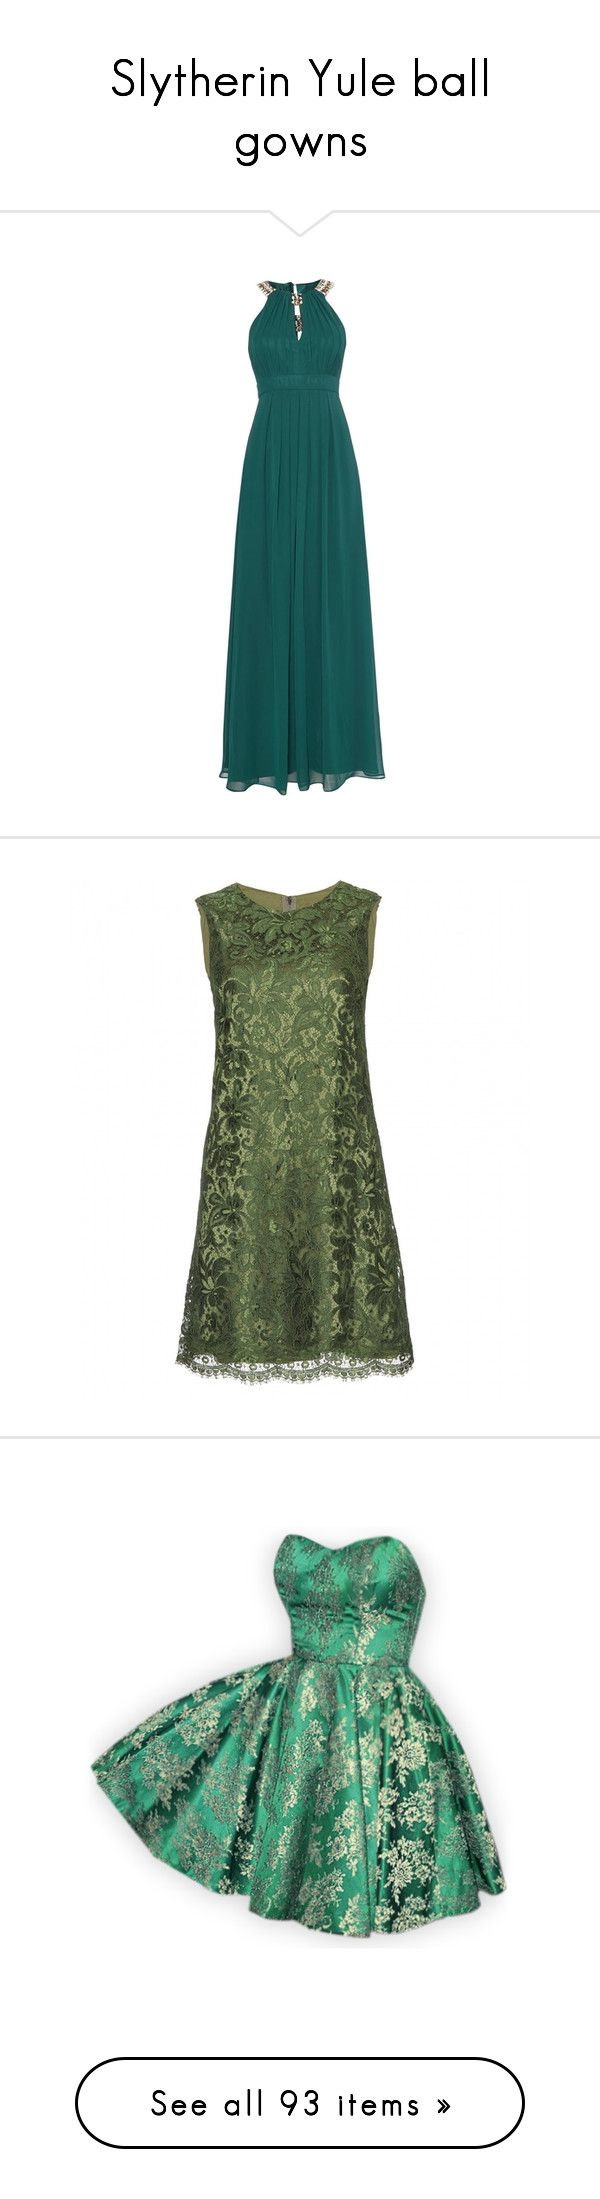 """""""Slytherin Yule ball gowns"""" by weeby ❤ liked on Polyvore featuring dresses, green, women, green dress, green sleeveless dress, halter top, keyhole maxi dress, green maxi dress, vestidos and vestiti"""